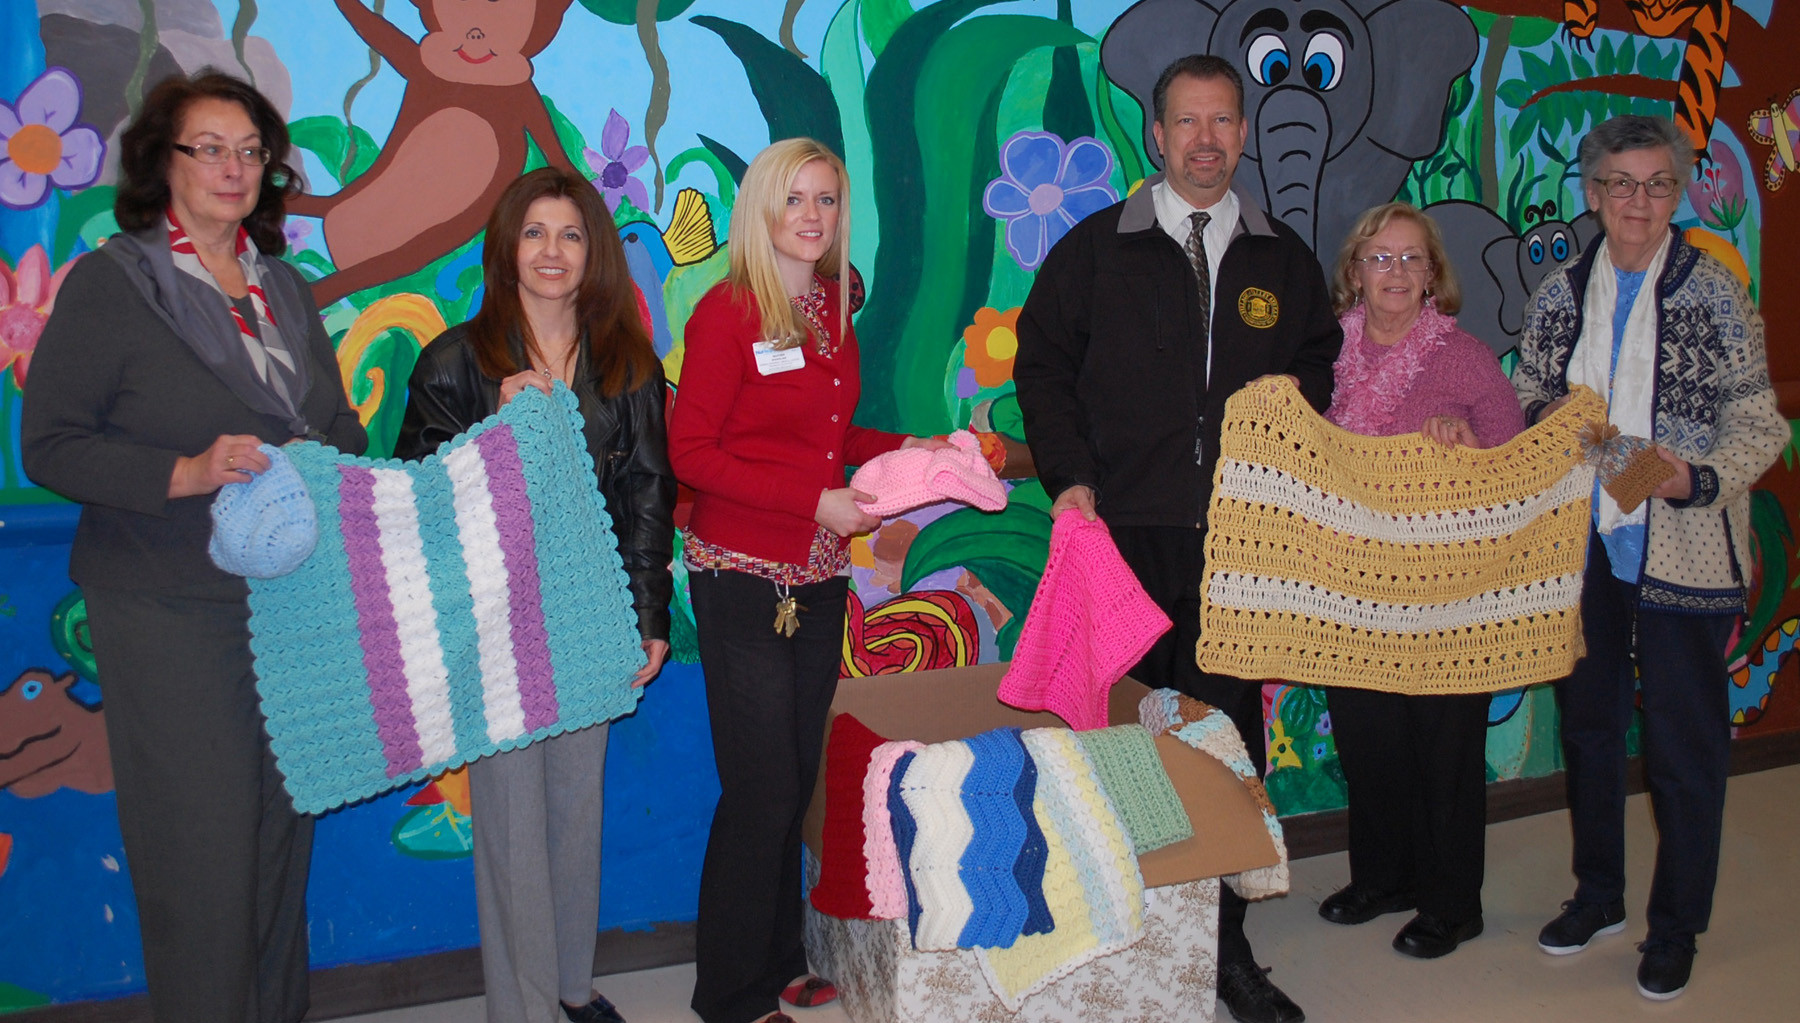 Members of the Silver Threads senior group and Valley Stream village officials visited Nassau University Medical Center last week to deliver handmade blankets and hats. From left are Monica Kerner, SallyAnn Esposito, Heather Spanfelner, Mayor Ed Fare, Barbara Welter and Joan Manney.